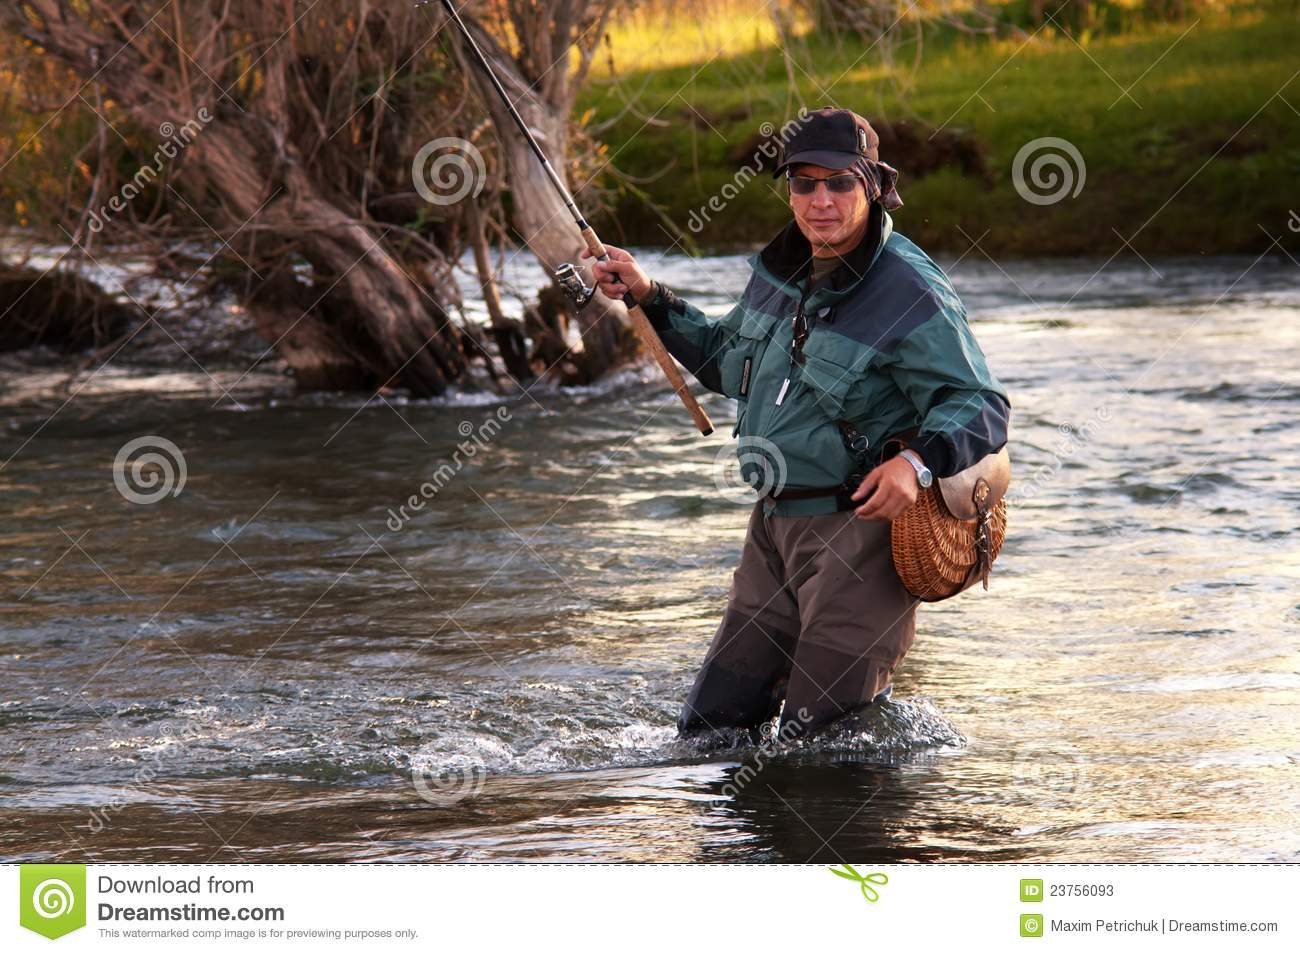 Fly fishing in mongolia stock photos image 23756093 for Fly fishing mongolia